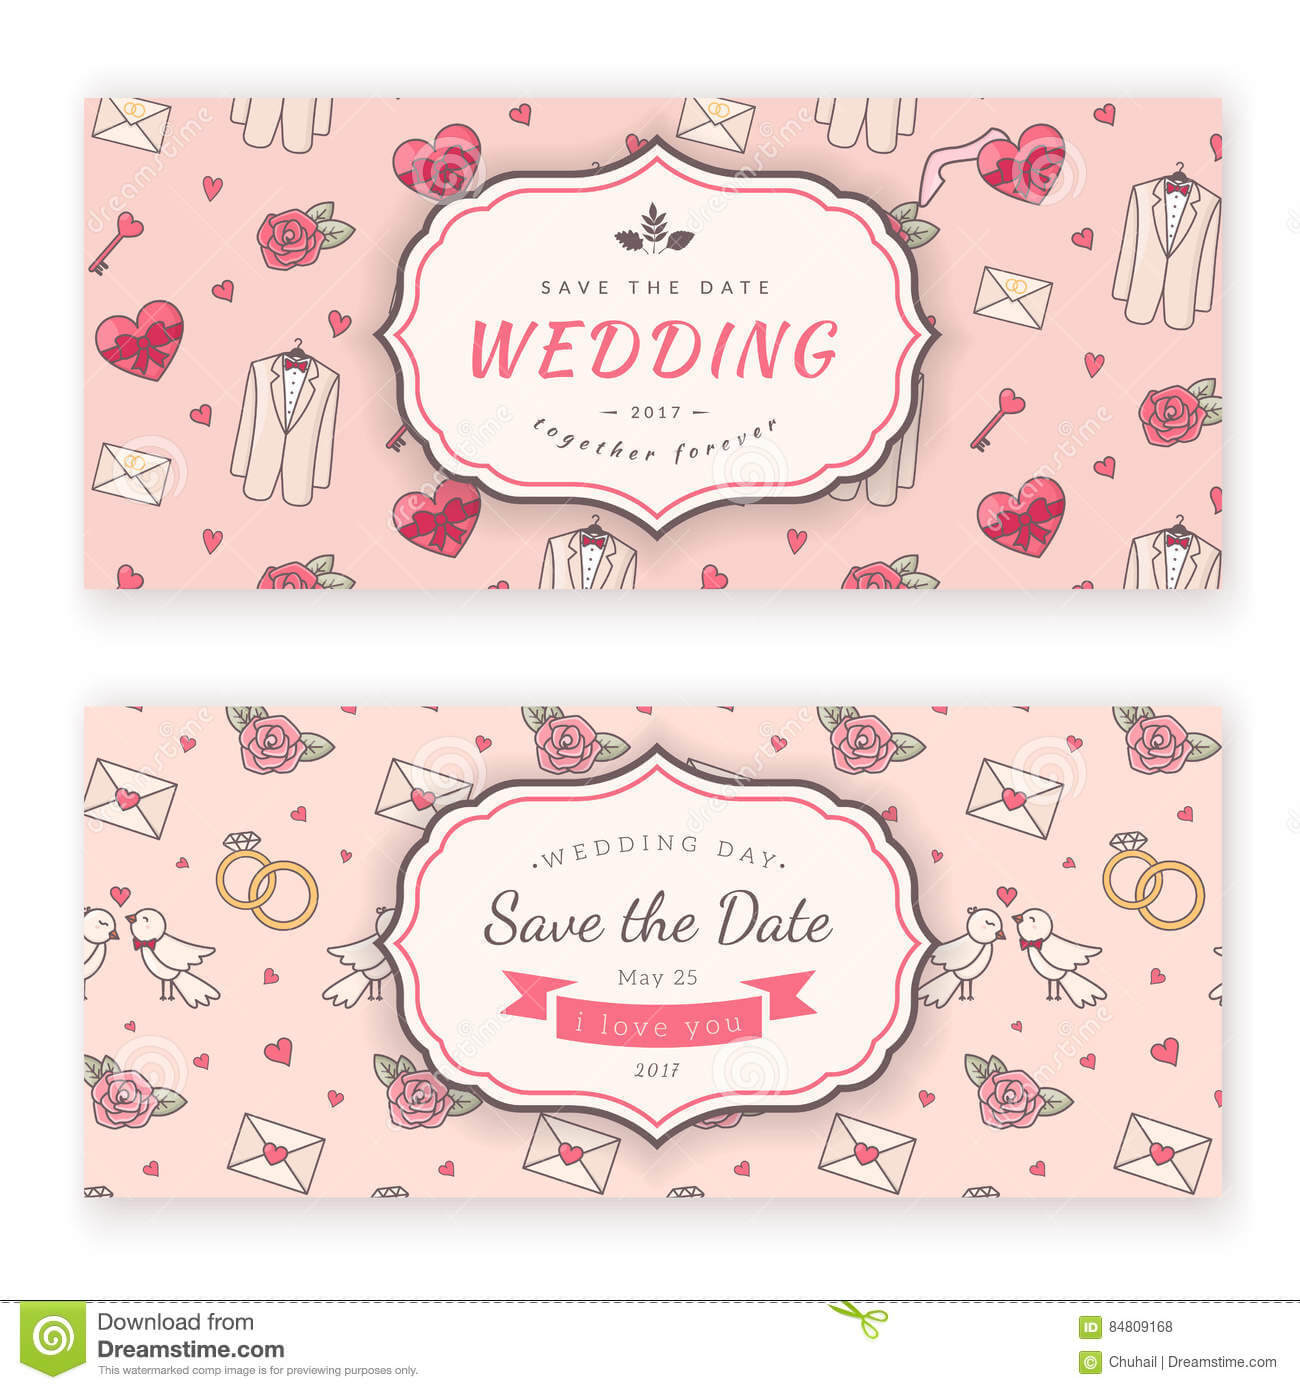 Wedding Banner Template. Stock Vector. Illustration Of In Wedding Banner Design Templates